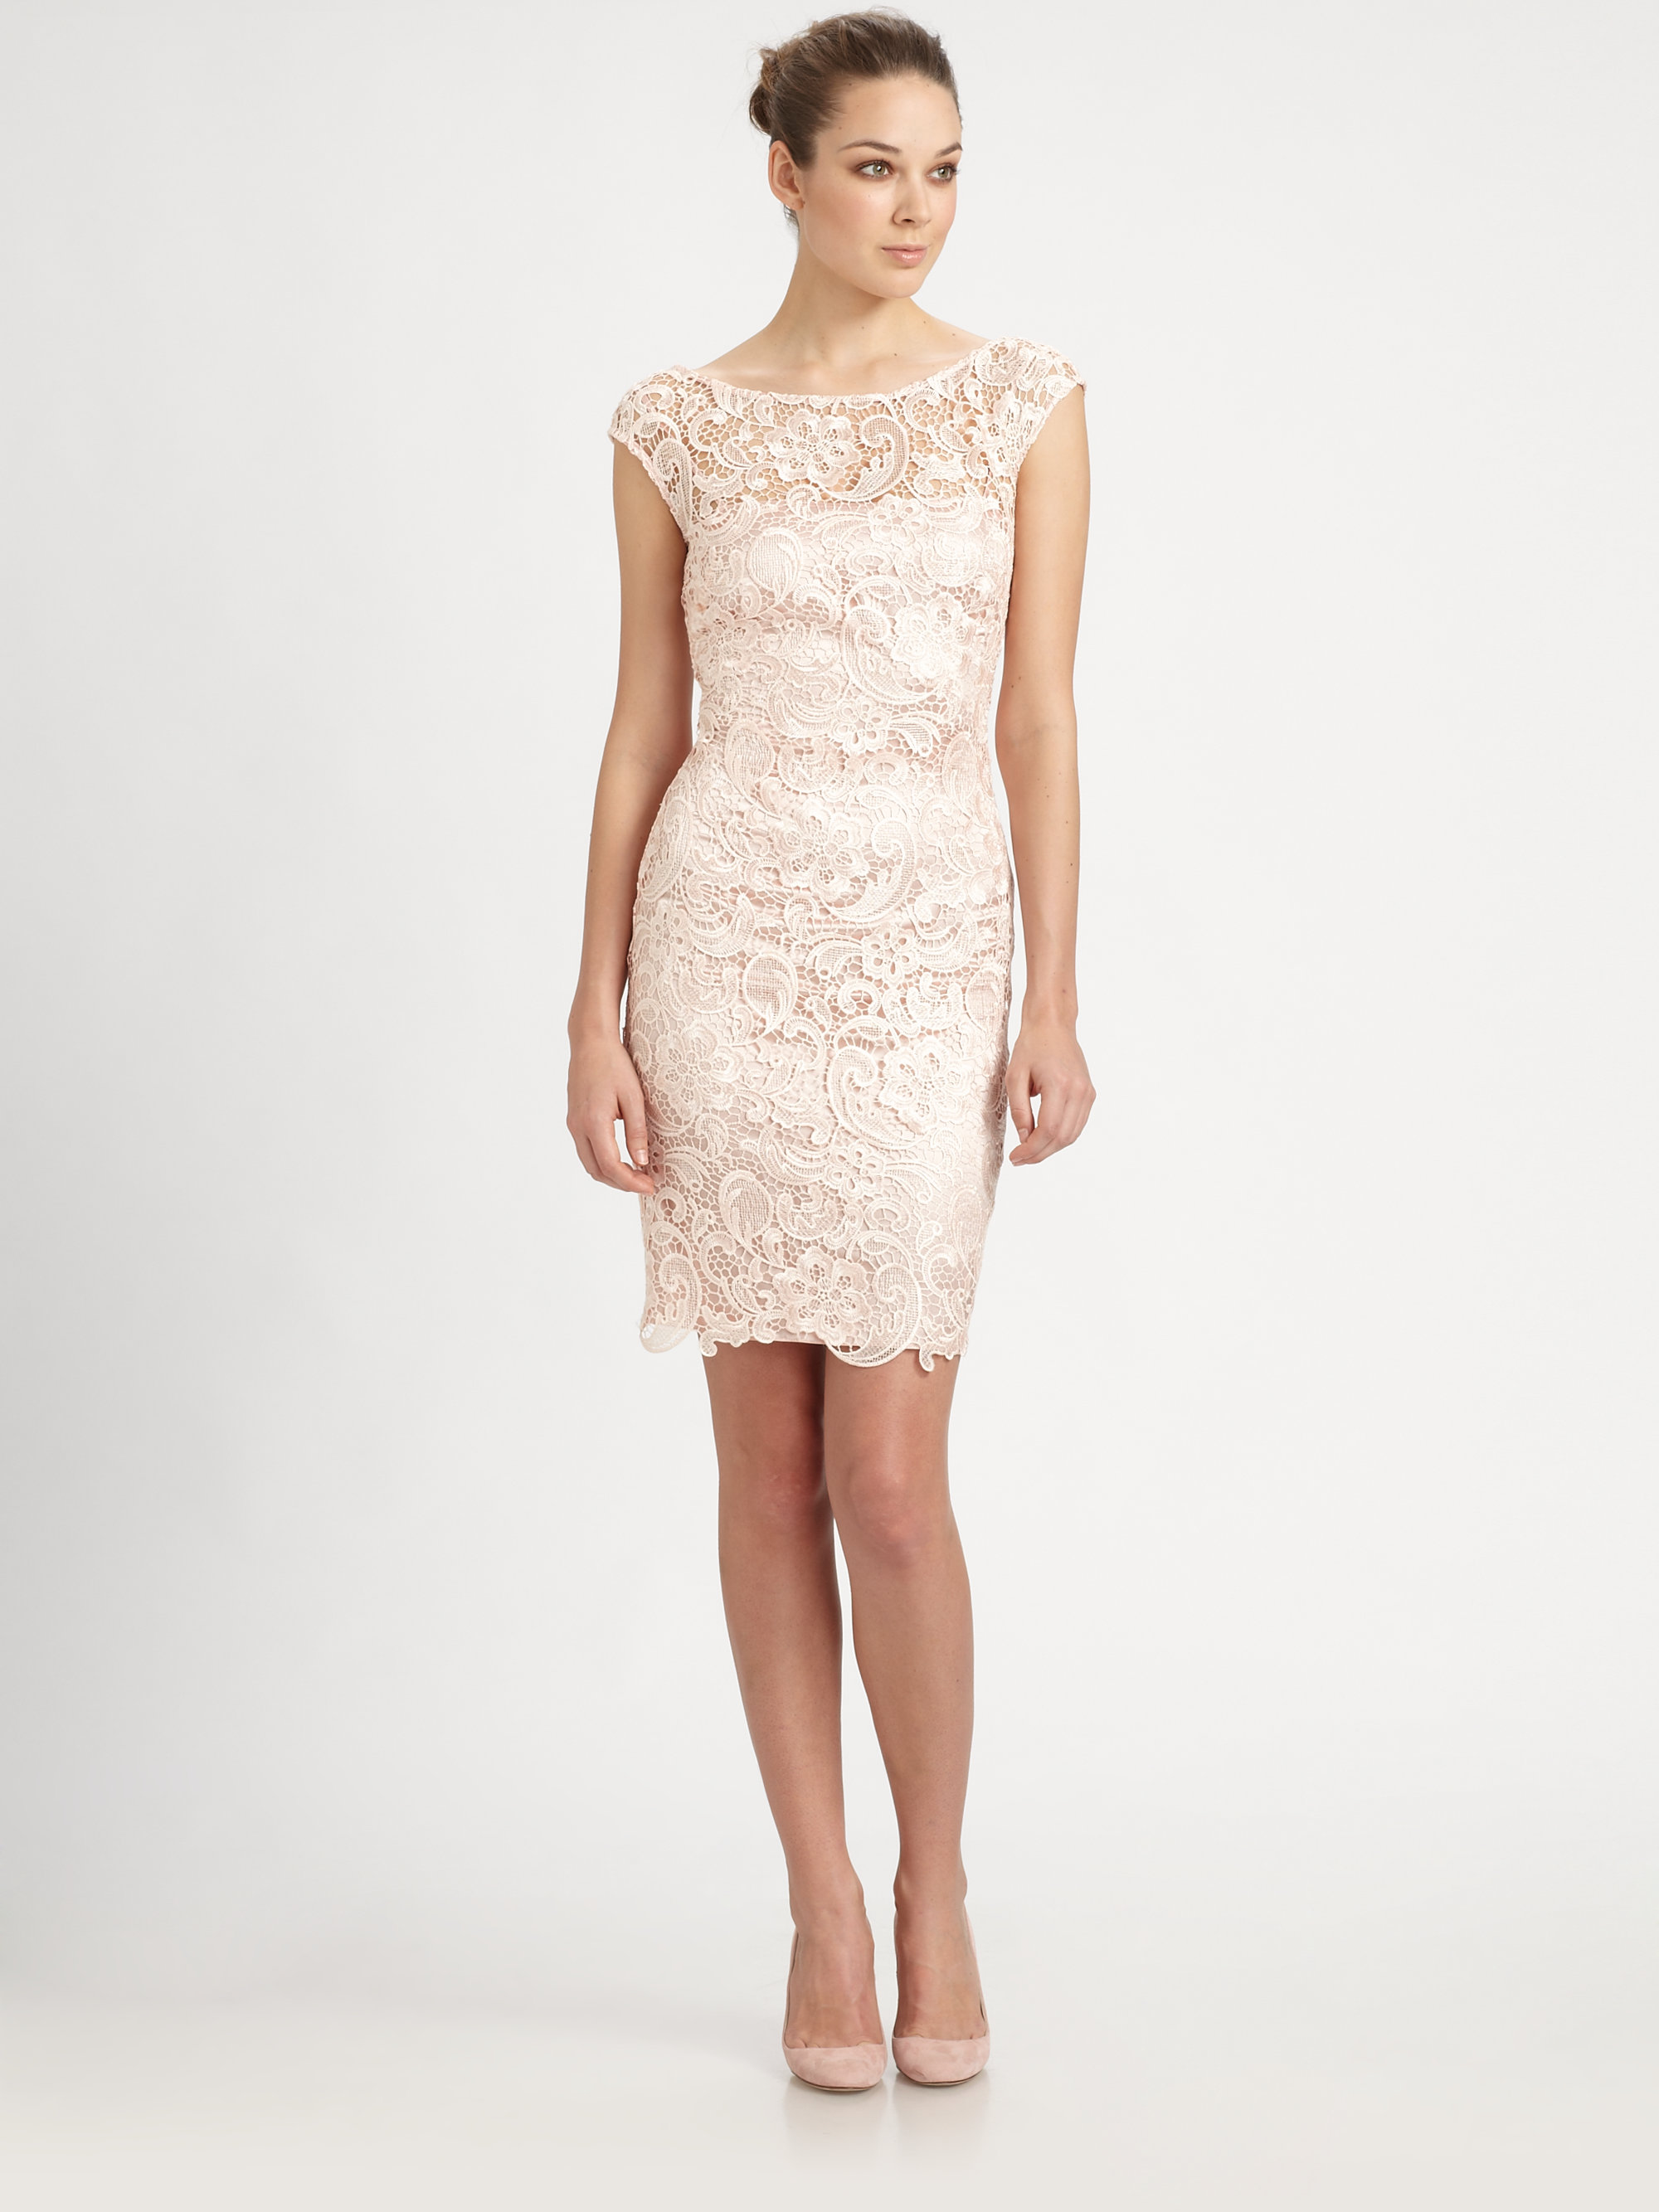 Ml monique lhuillier Venise Lace Dress in Pink | Lyst